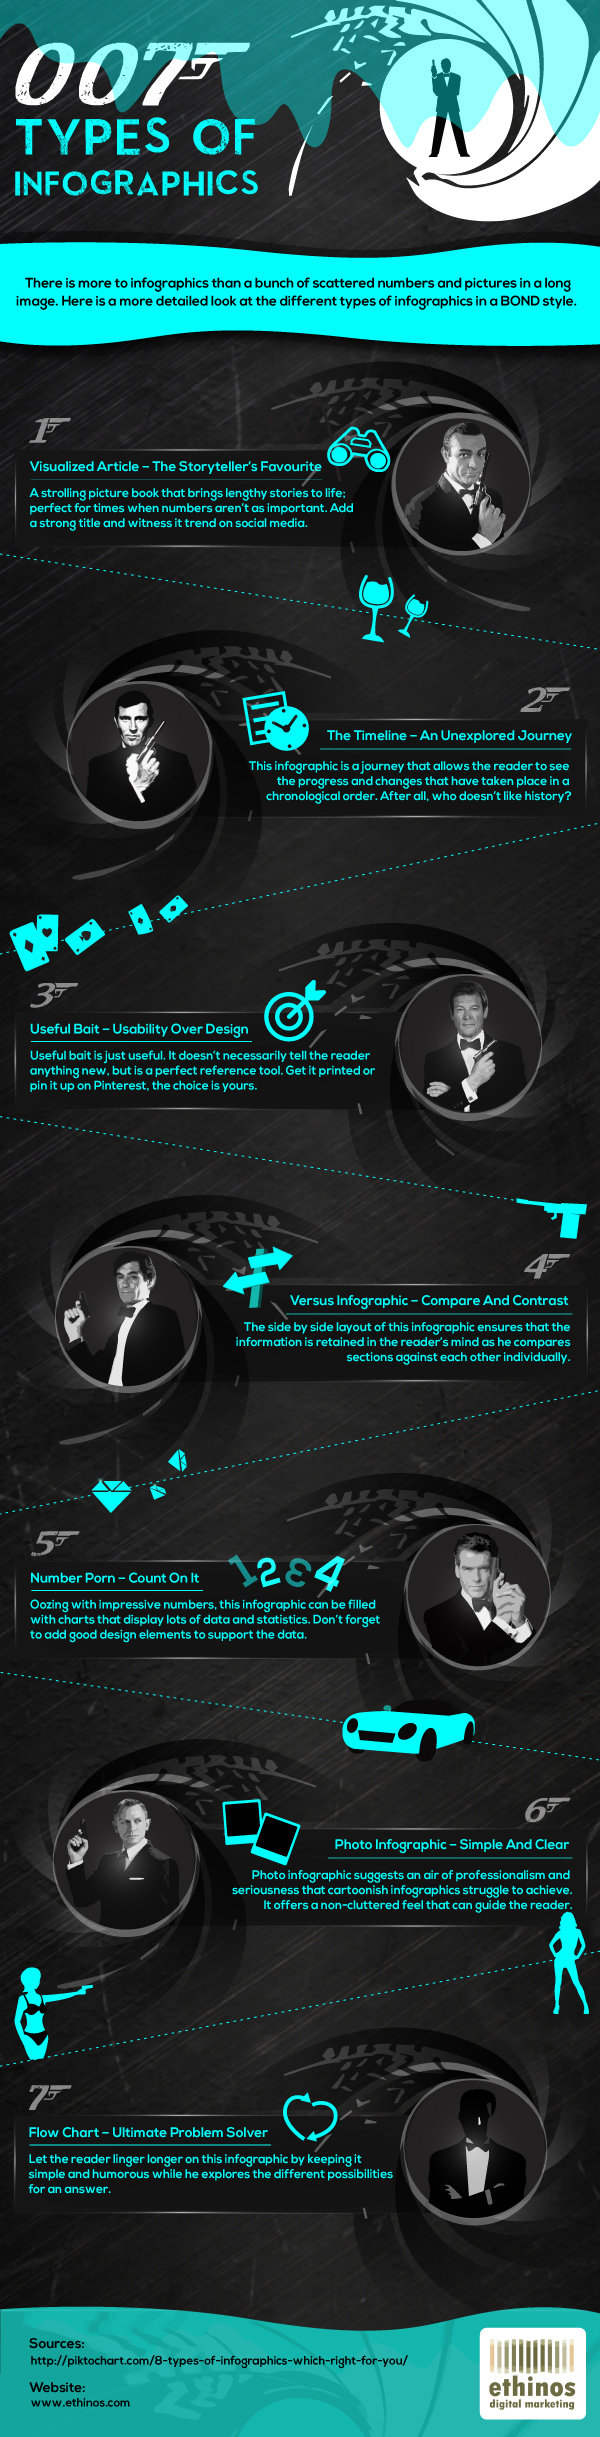 Seven Types of Infographics That Will Help You Do Marketing 007 Style #Infographic